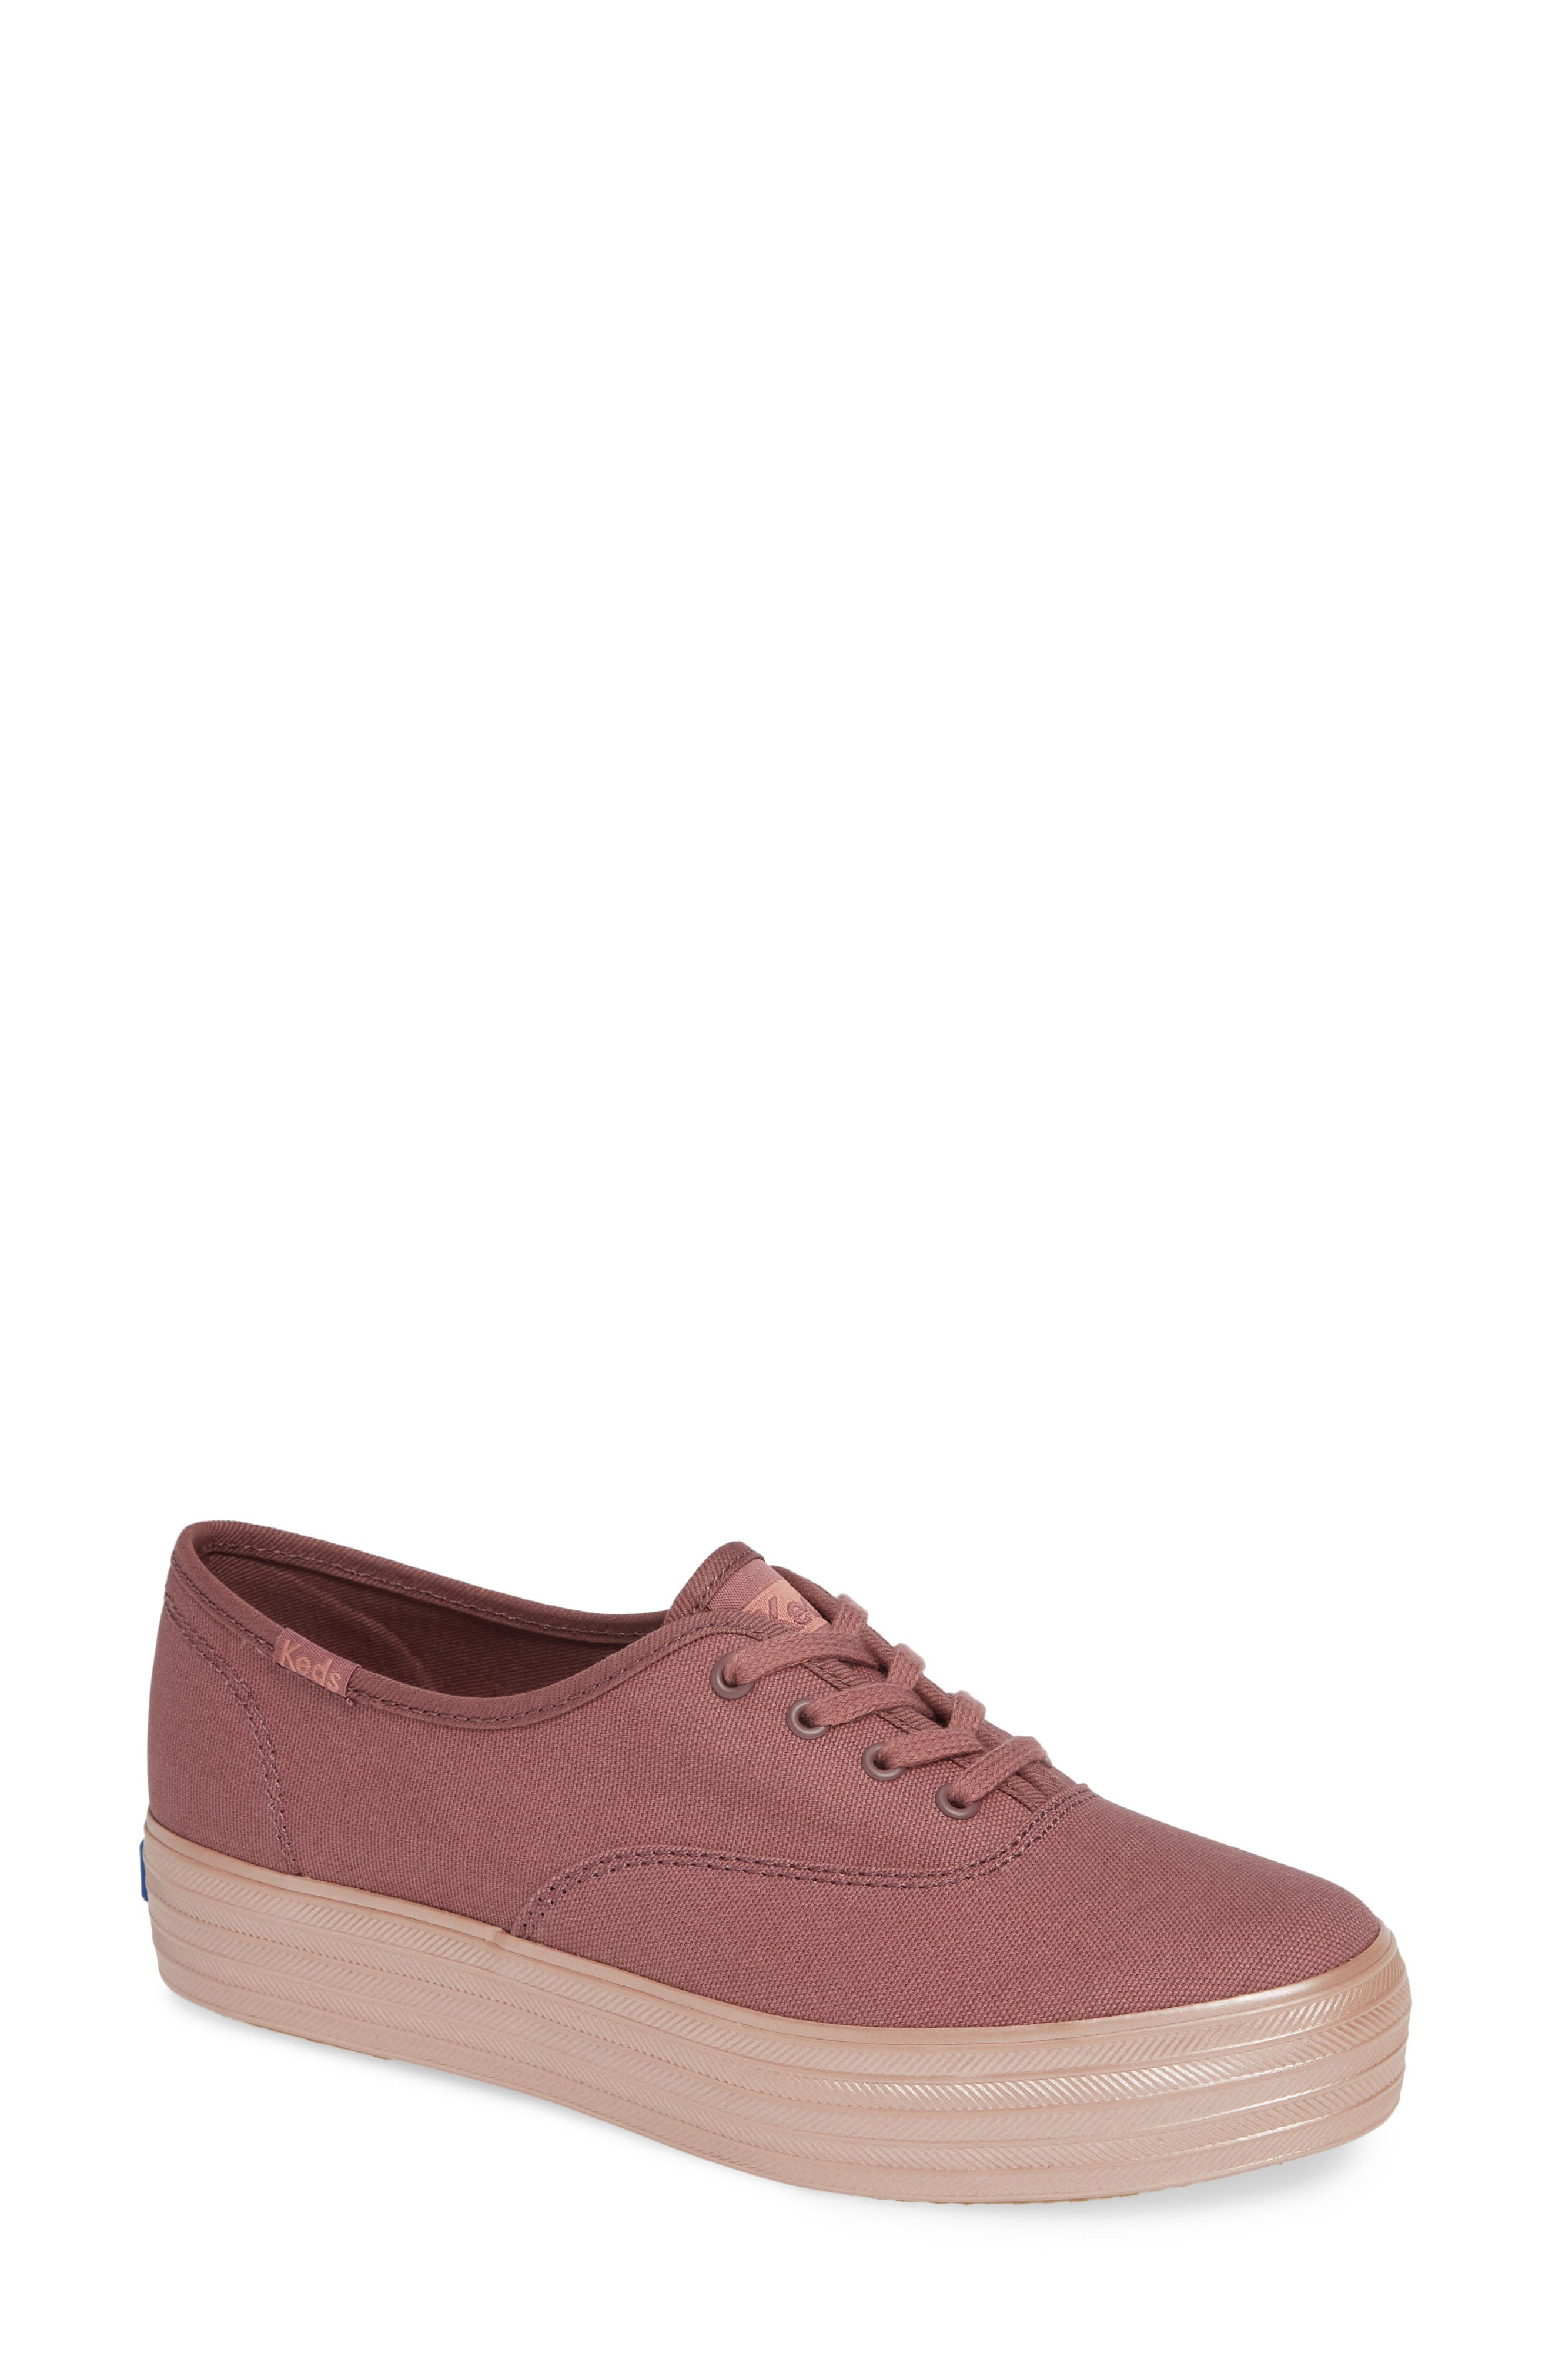 KEDS<SUP>®</SUP>, Triple Shimmer Sneaker, Main thumbnail 1, color, MAUVE